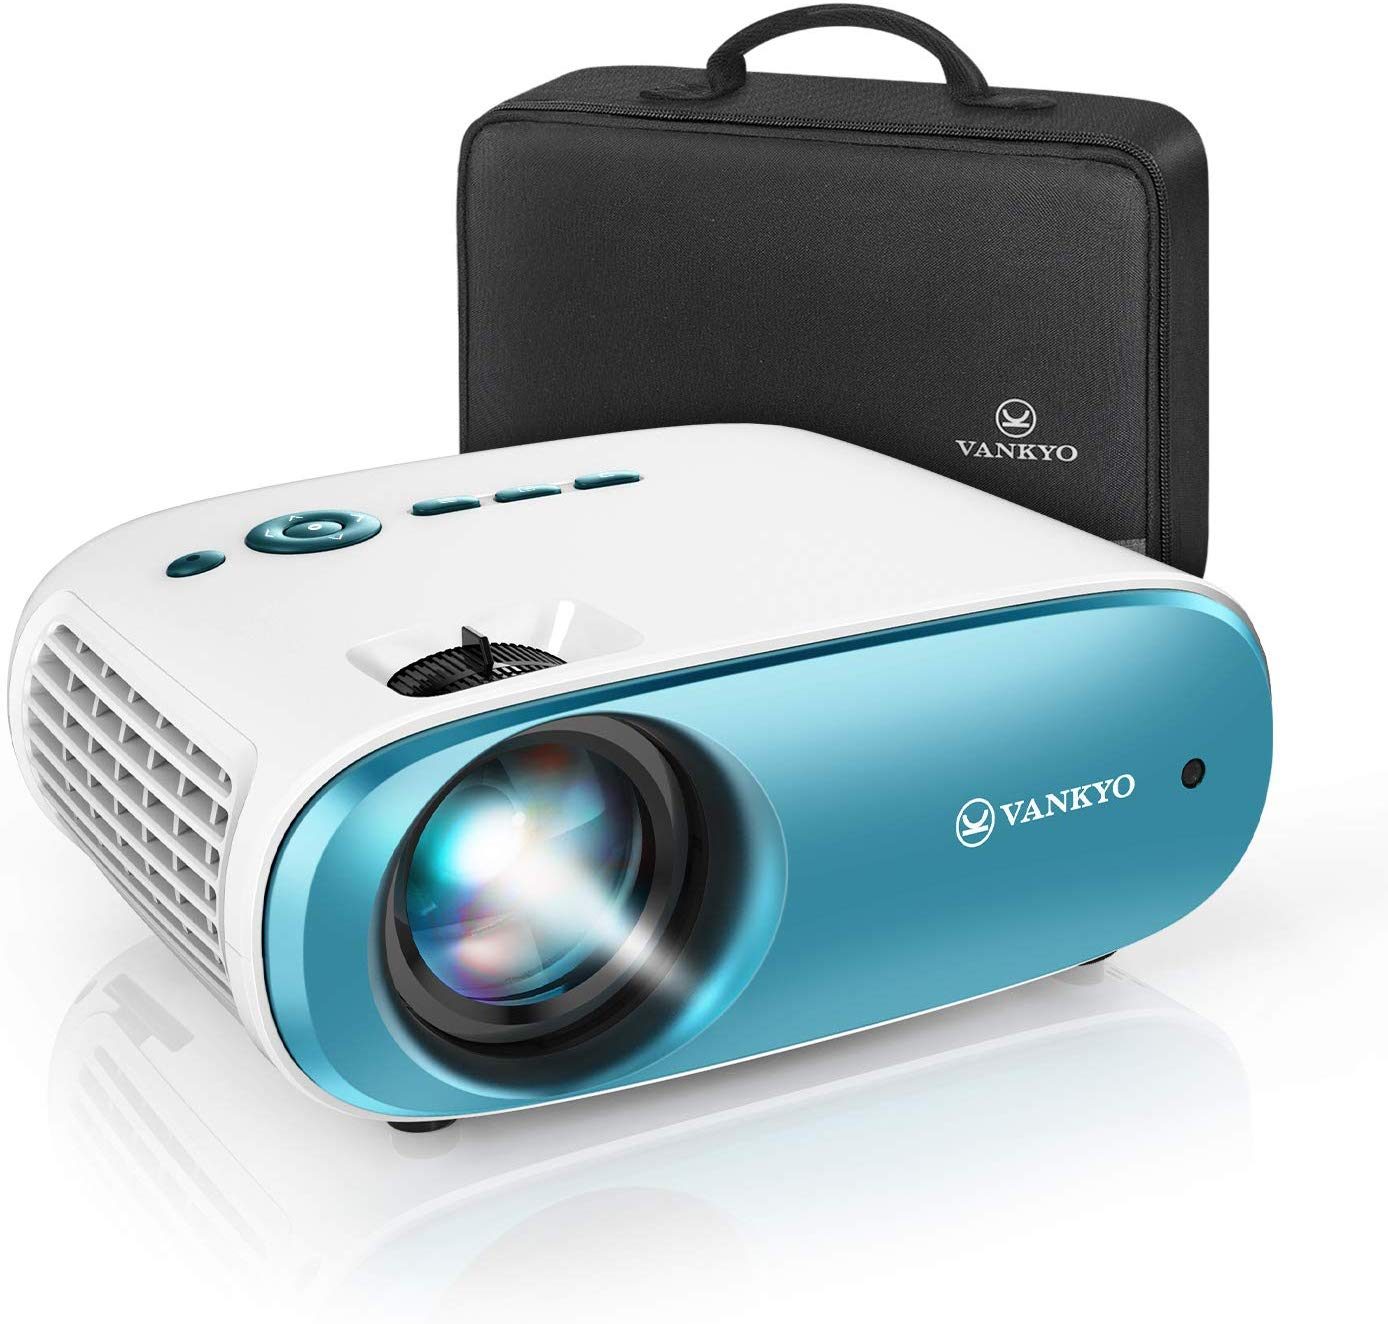 """VANKYO Cinemango 100 Mini Video Projector, HD Movie Projector Support 1080P, 220"""" Display, 50,000 Hrs Lamp Life, Compatible with TV Stick, HDMIx2, USBx2, VGA, TF, AV for Home Entertainment"""